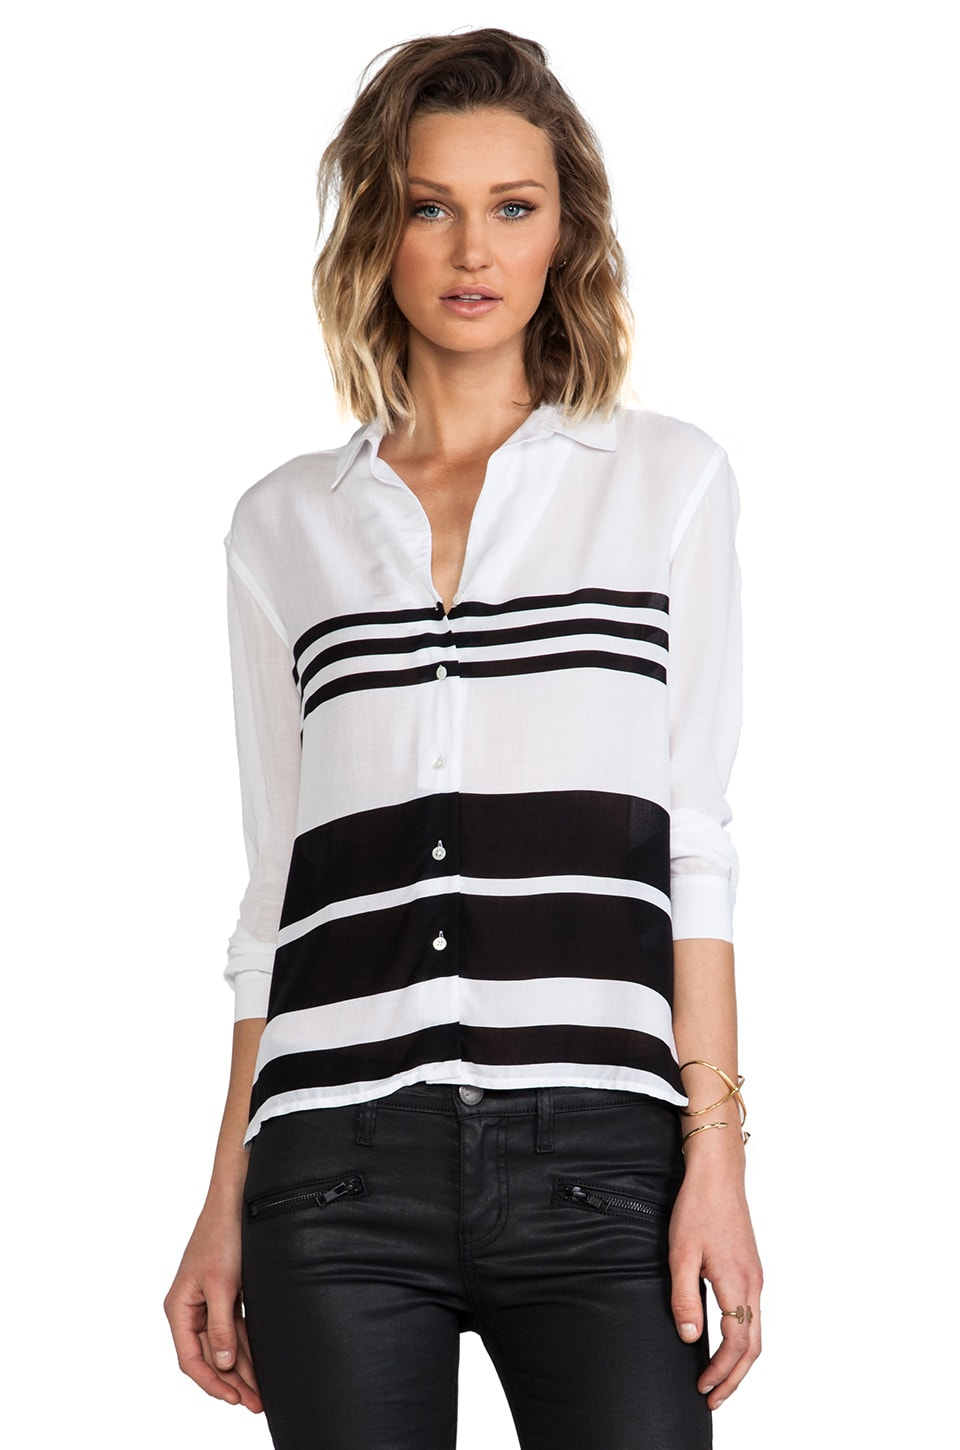 James Perse Relaxed Blanket Stripe Top in White & Abyss